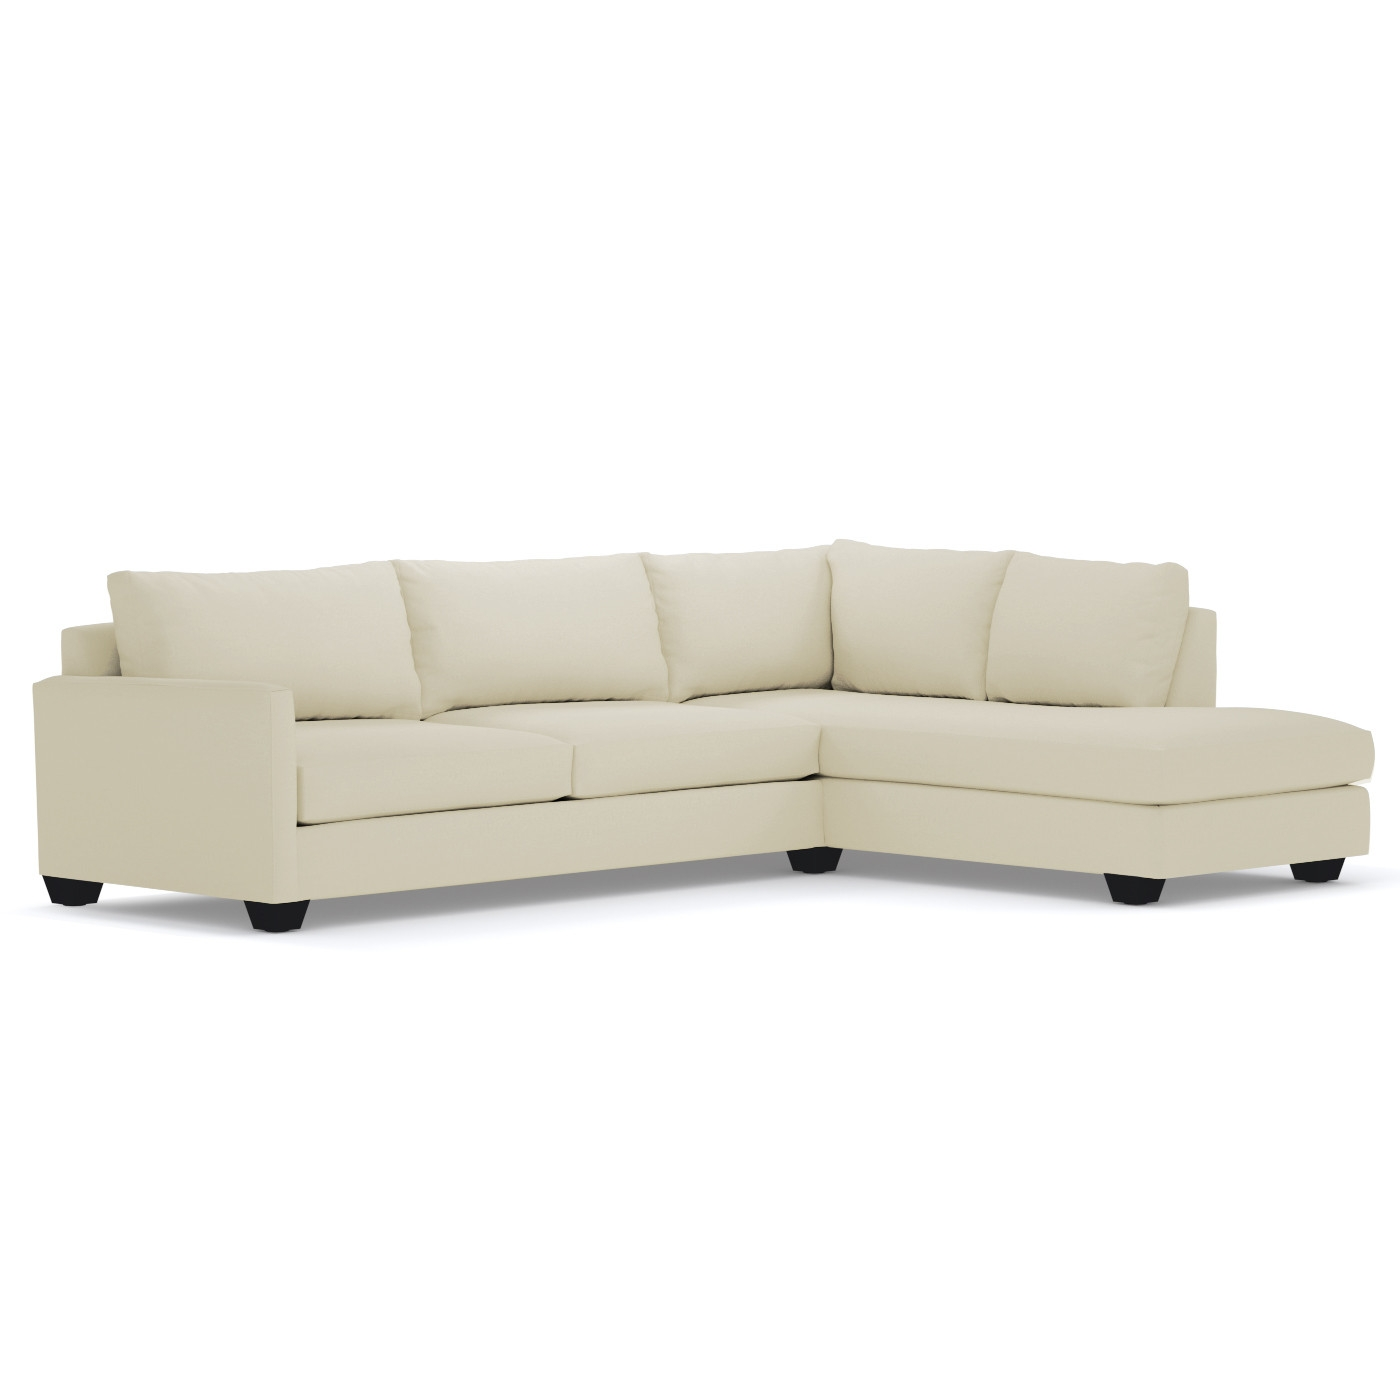 8642 transitional sectional sofa with chaise by albany classic sofas industries reviews review home co